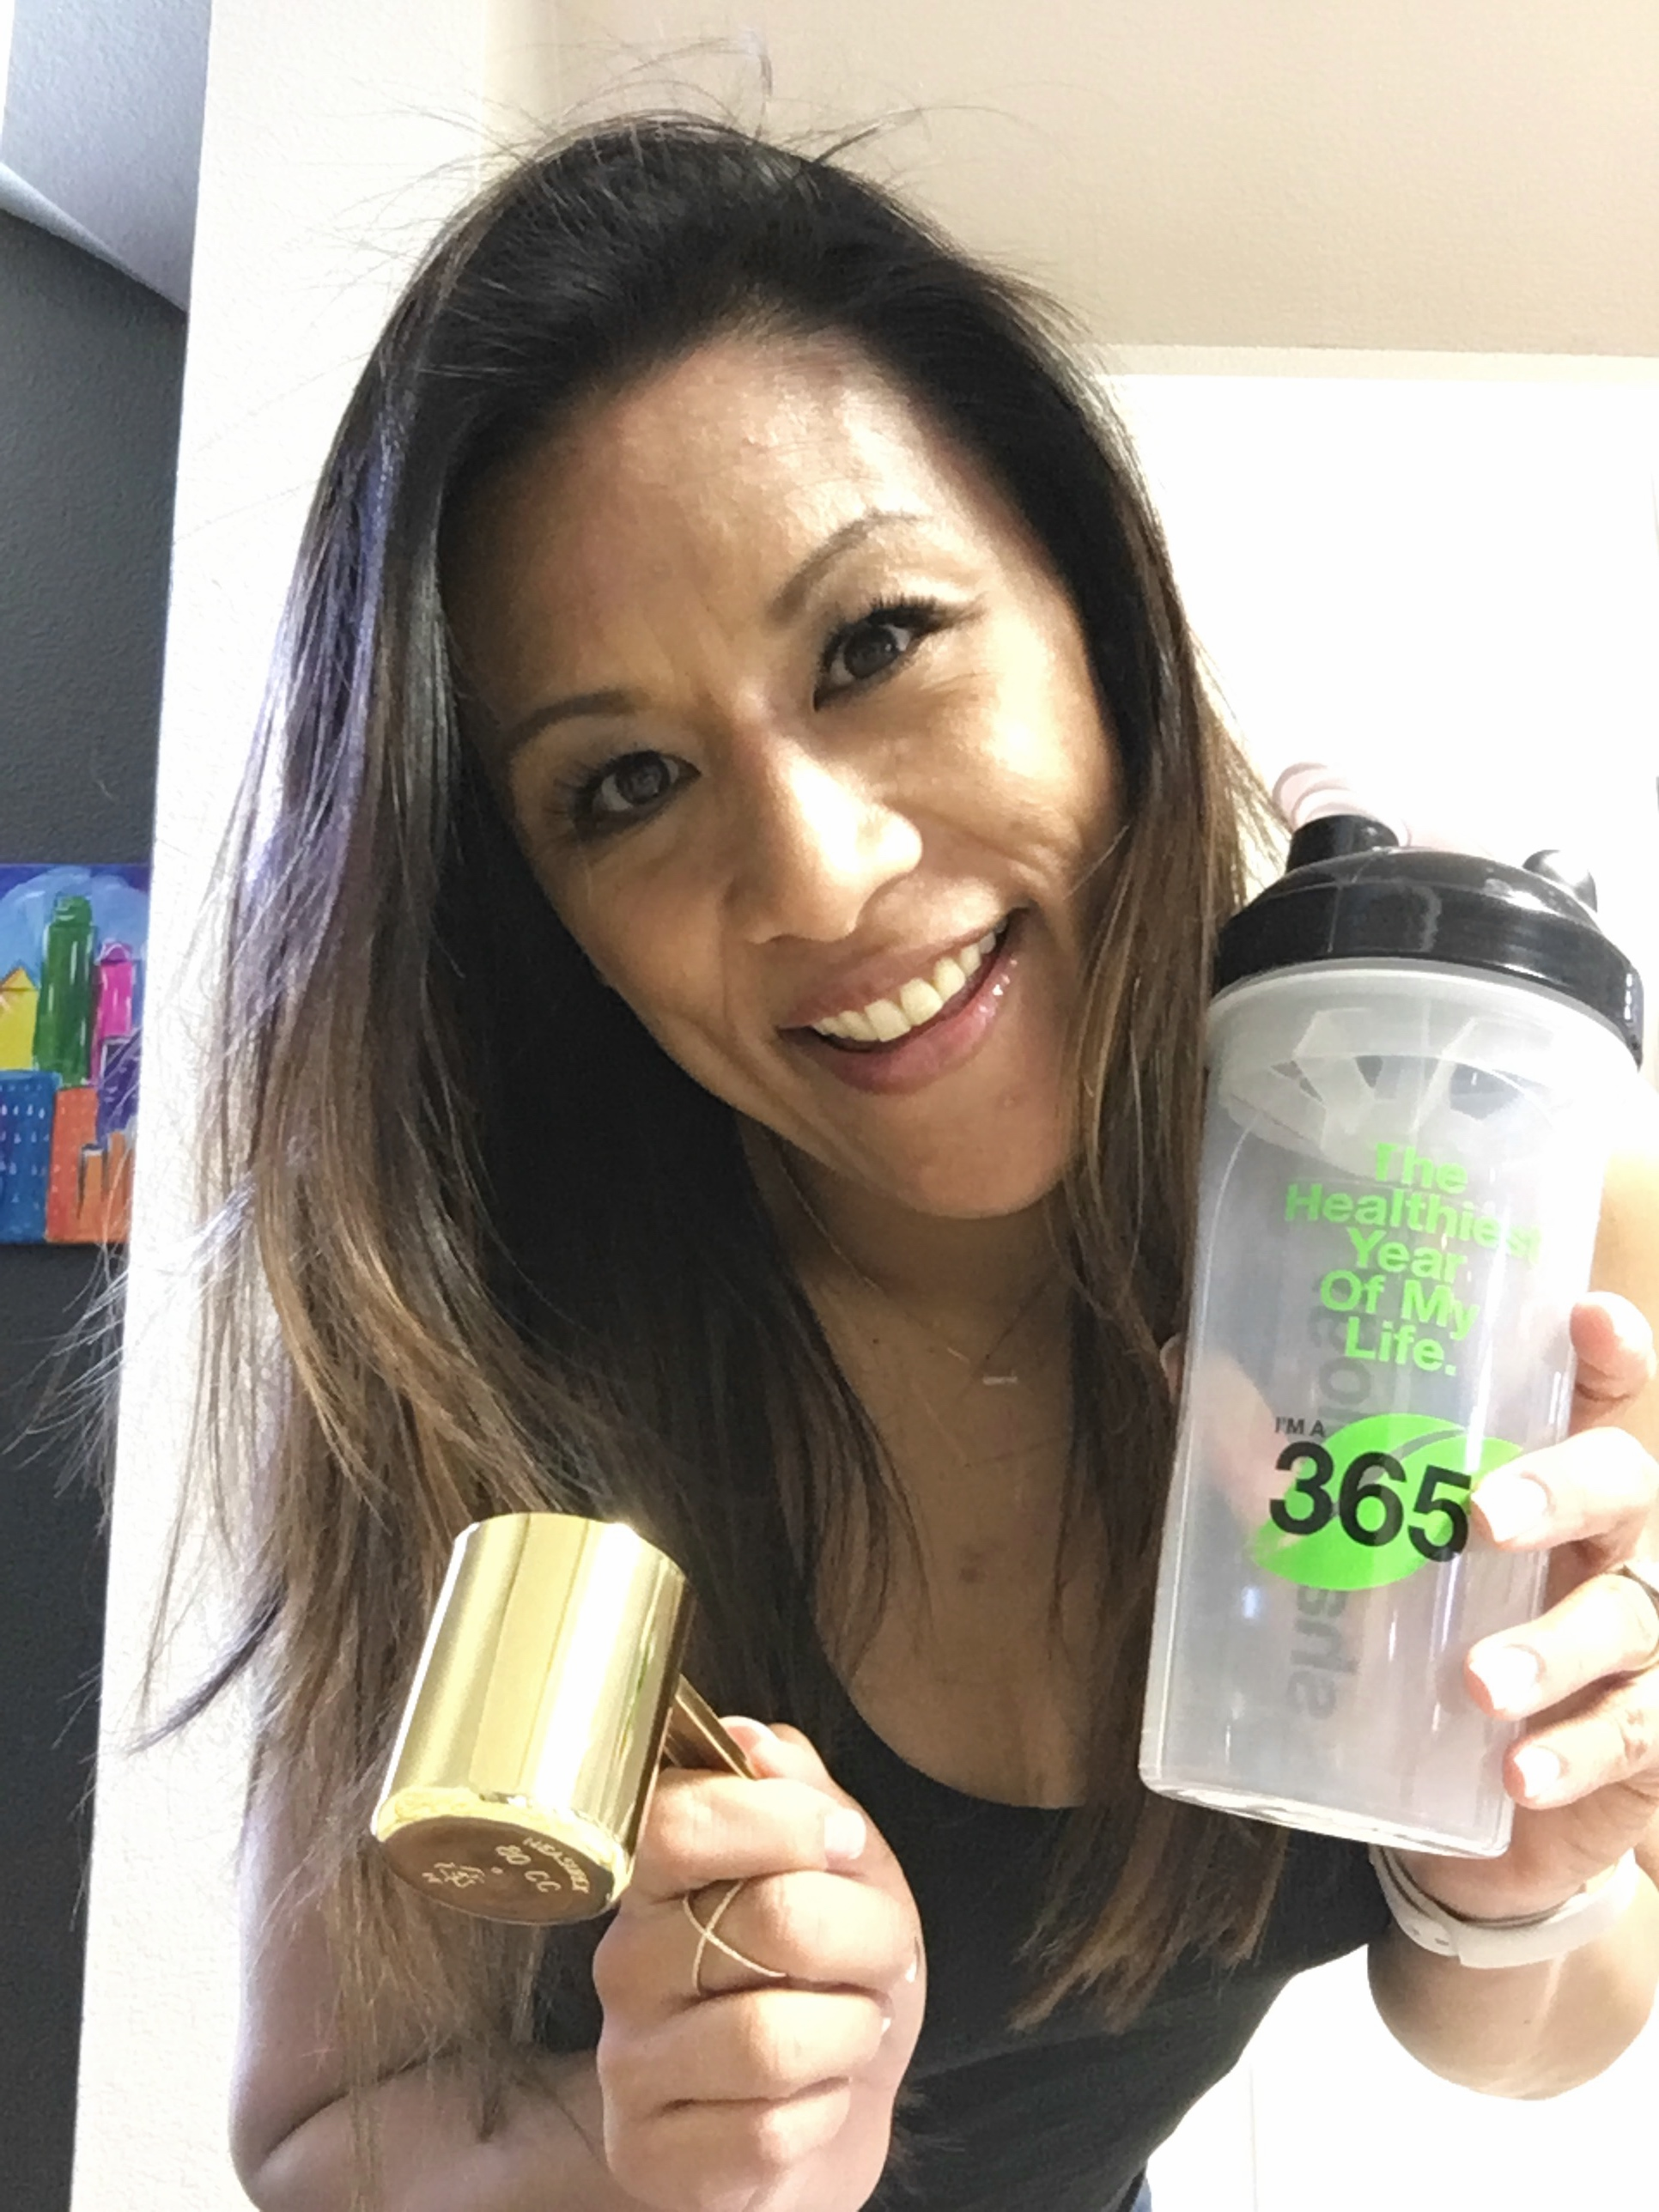 365er of the Month: Tania Baron